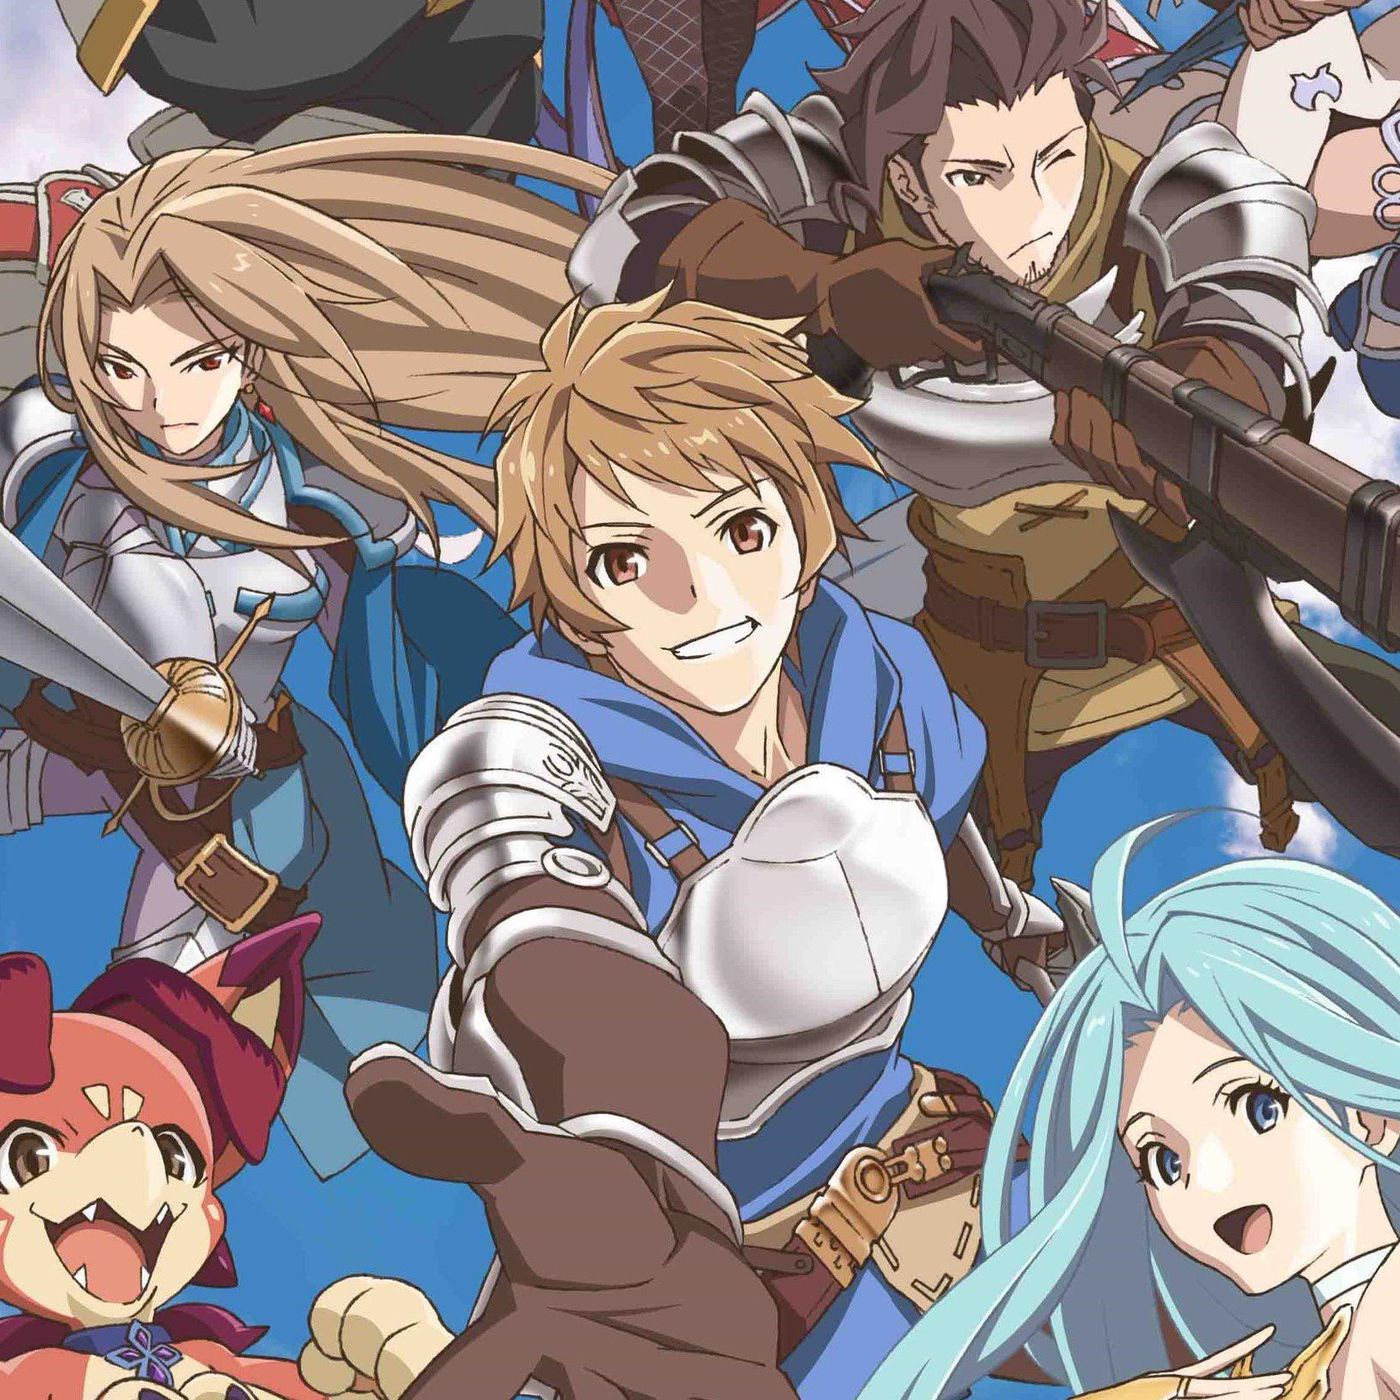 Full Anime Porn Movie Dubbed this fall anime season is full of superheroes, fantasy, and